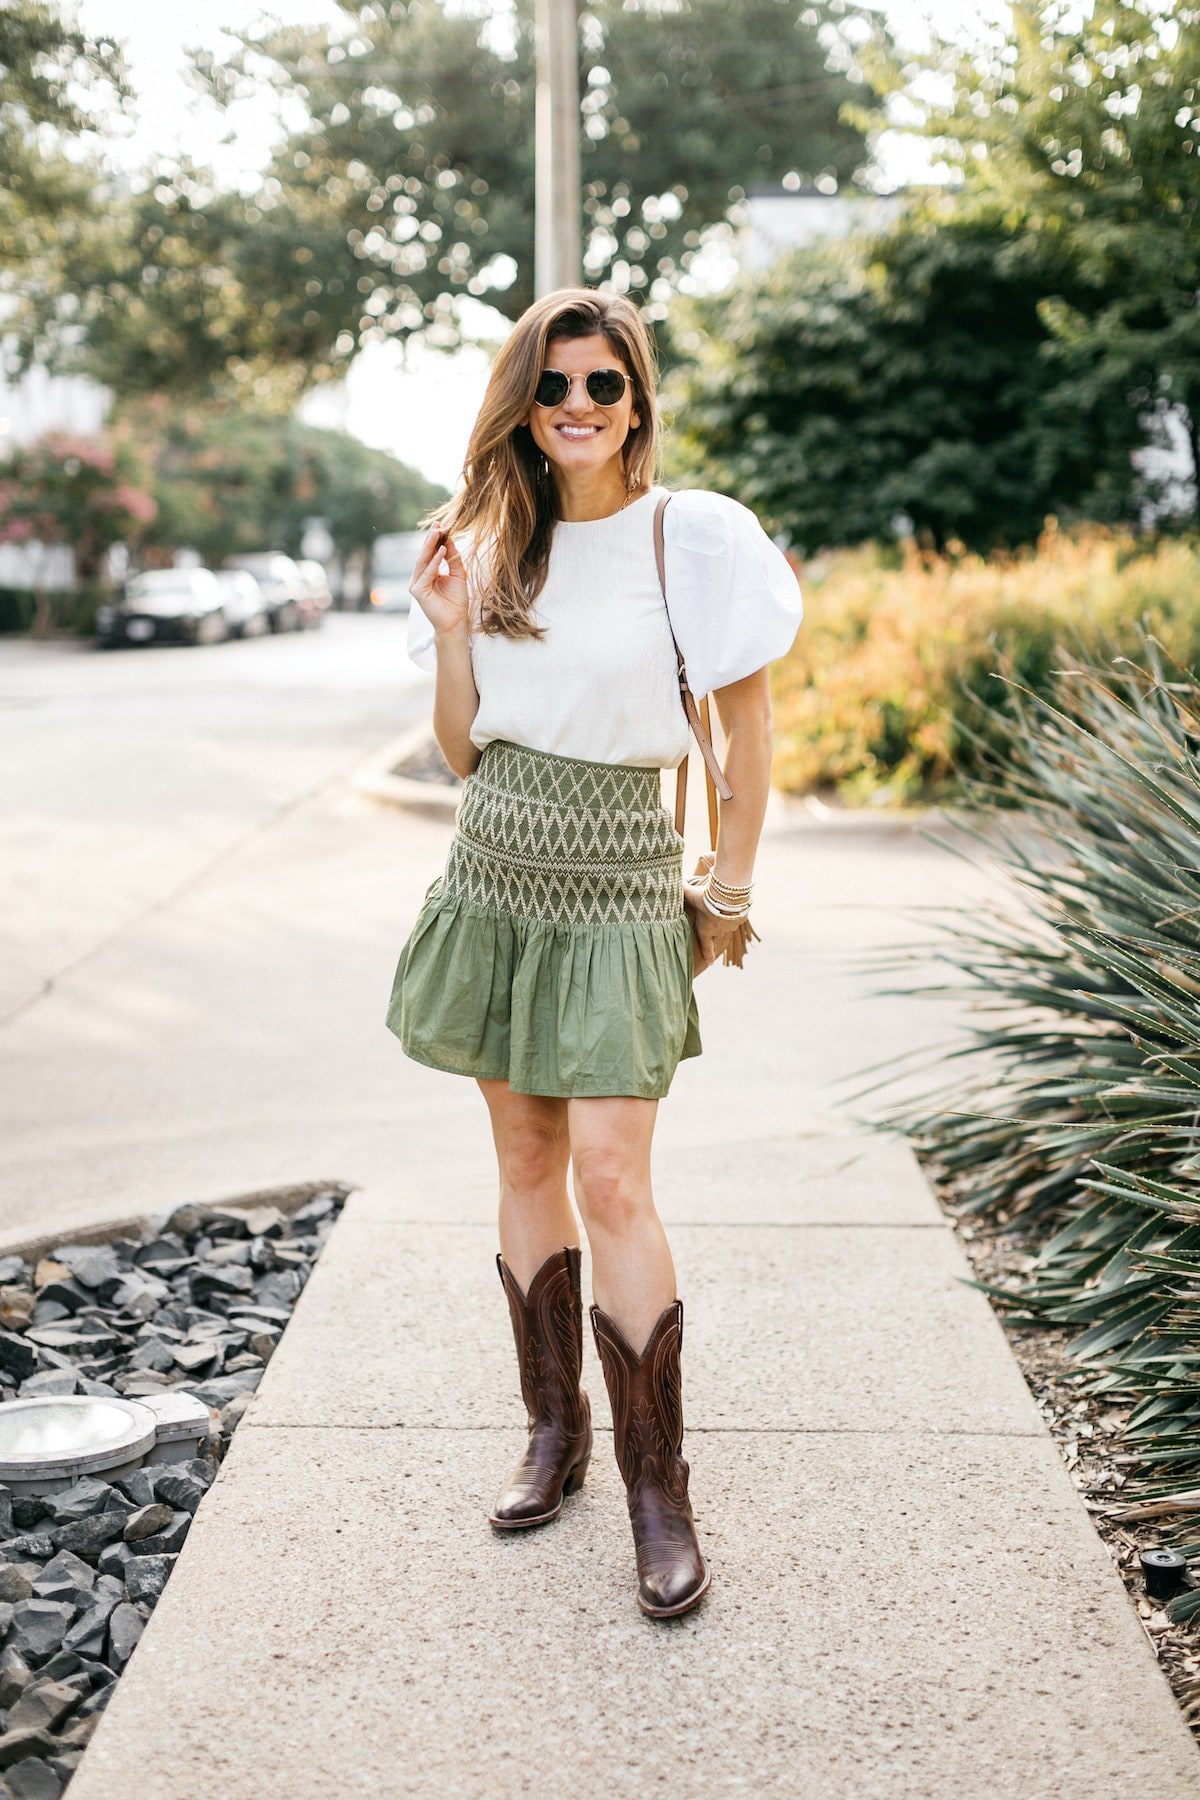 Brighton Butler wearing anthro green smocked shirt with white puff sleeved shirt and cowboy boots